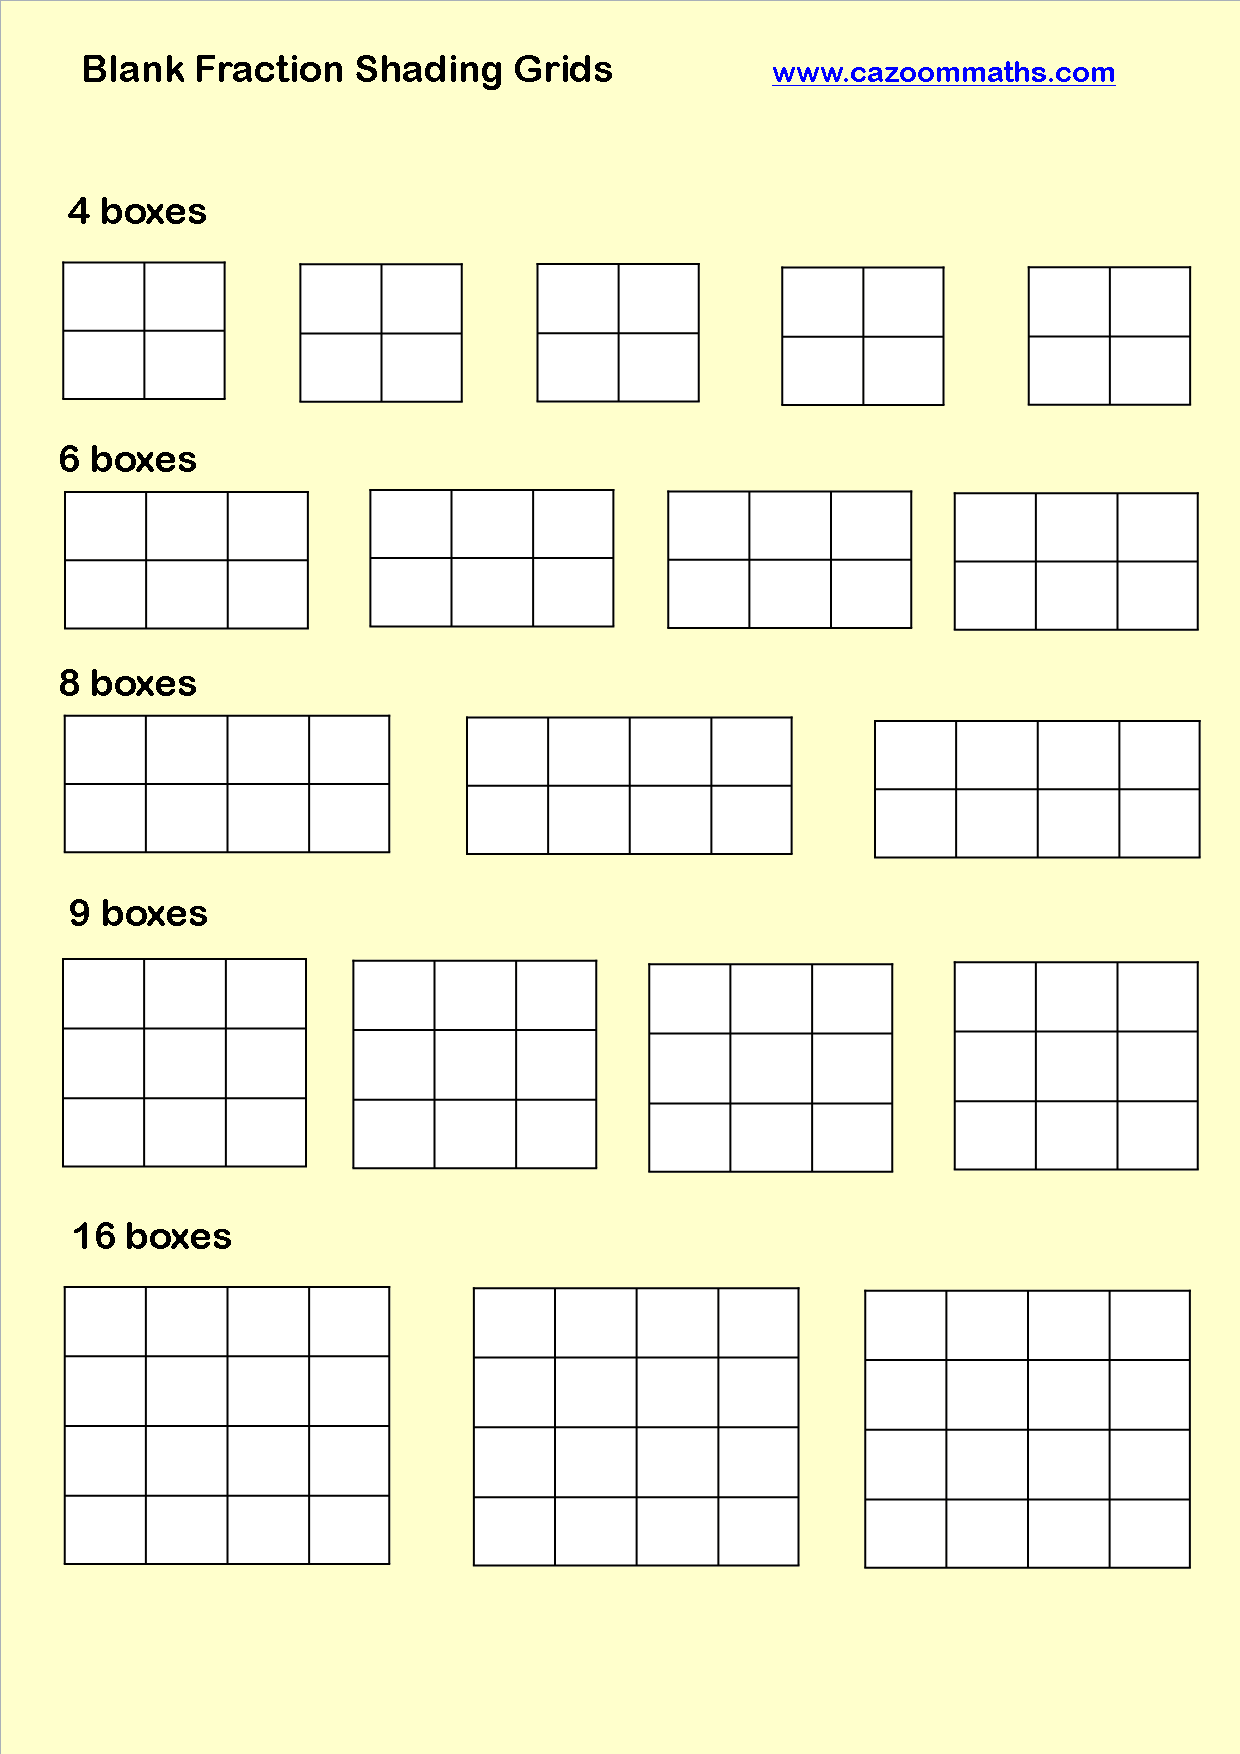 Blank Fraction Shading Grids